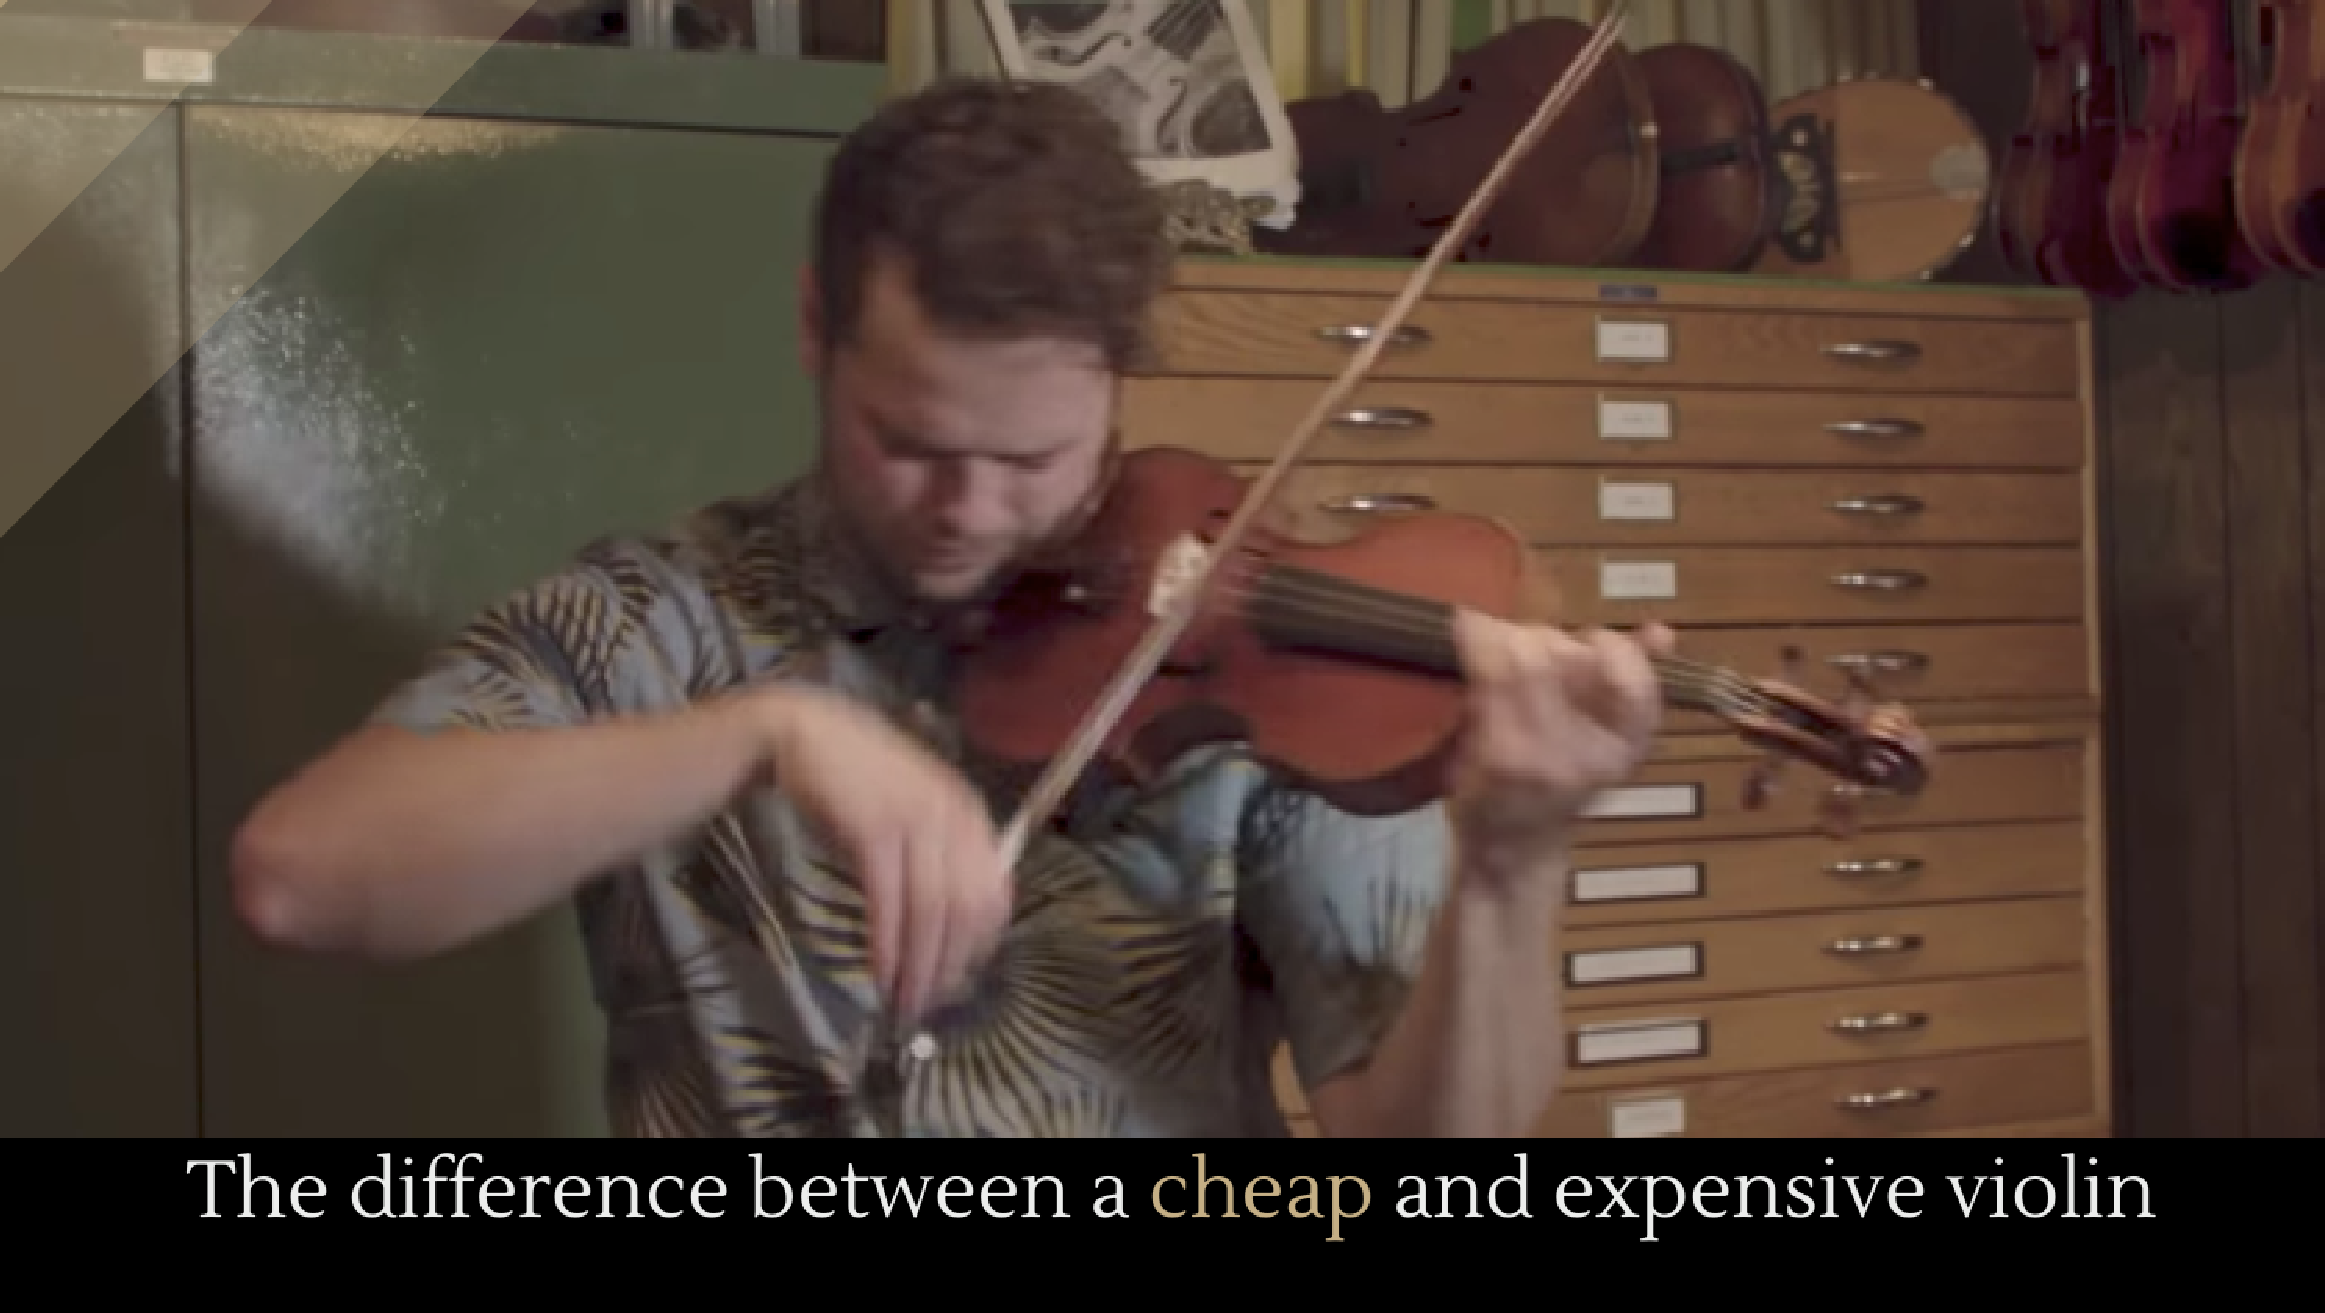 The difference between a cheap and expensive violin